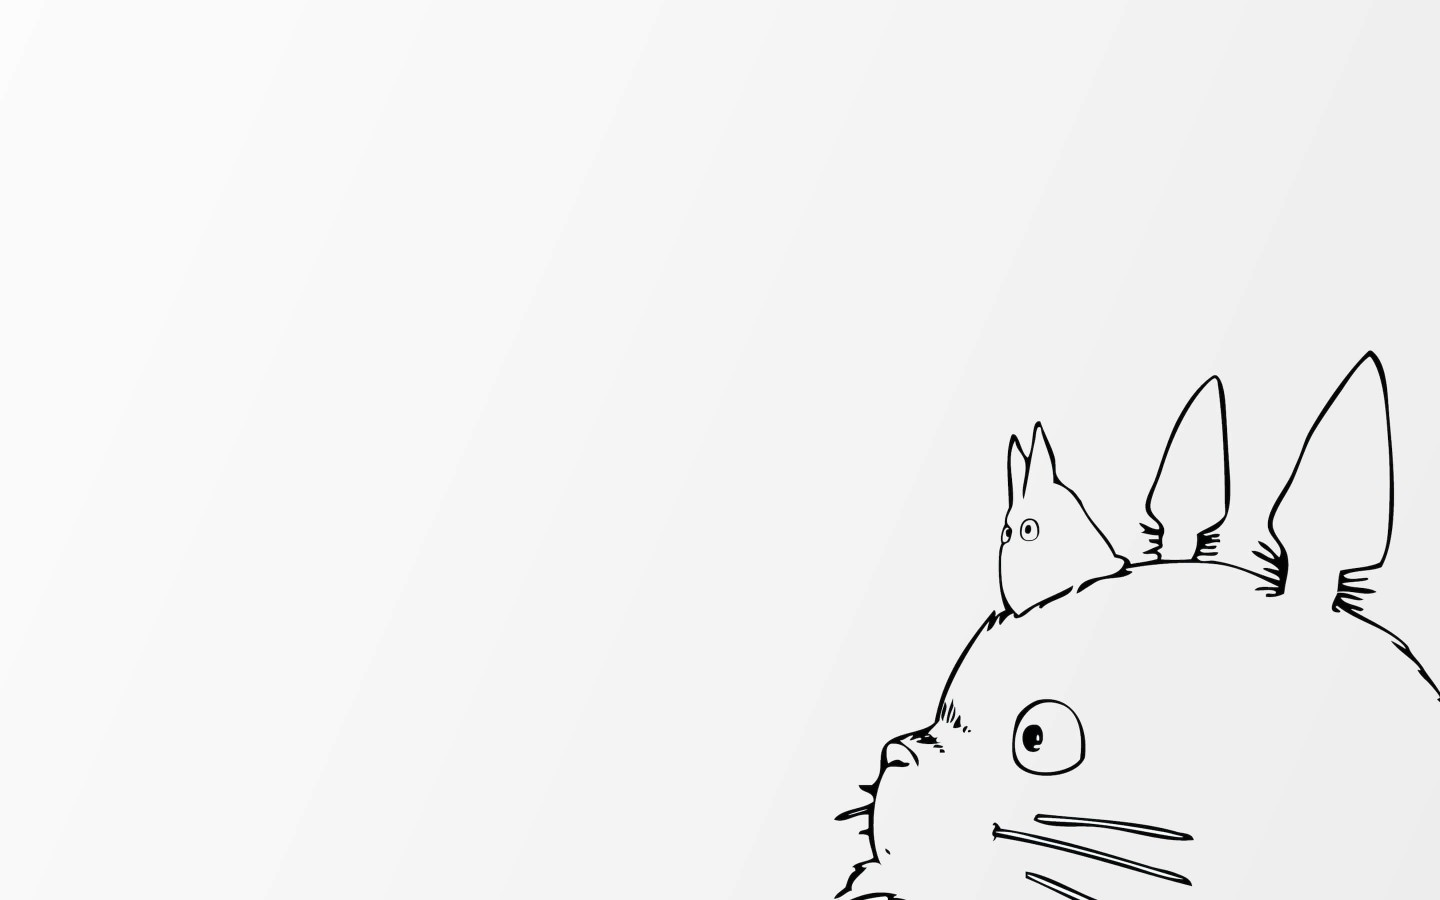 My Neighbor Totoro Wallpaper for Desktop 1440x900